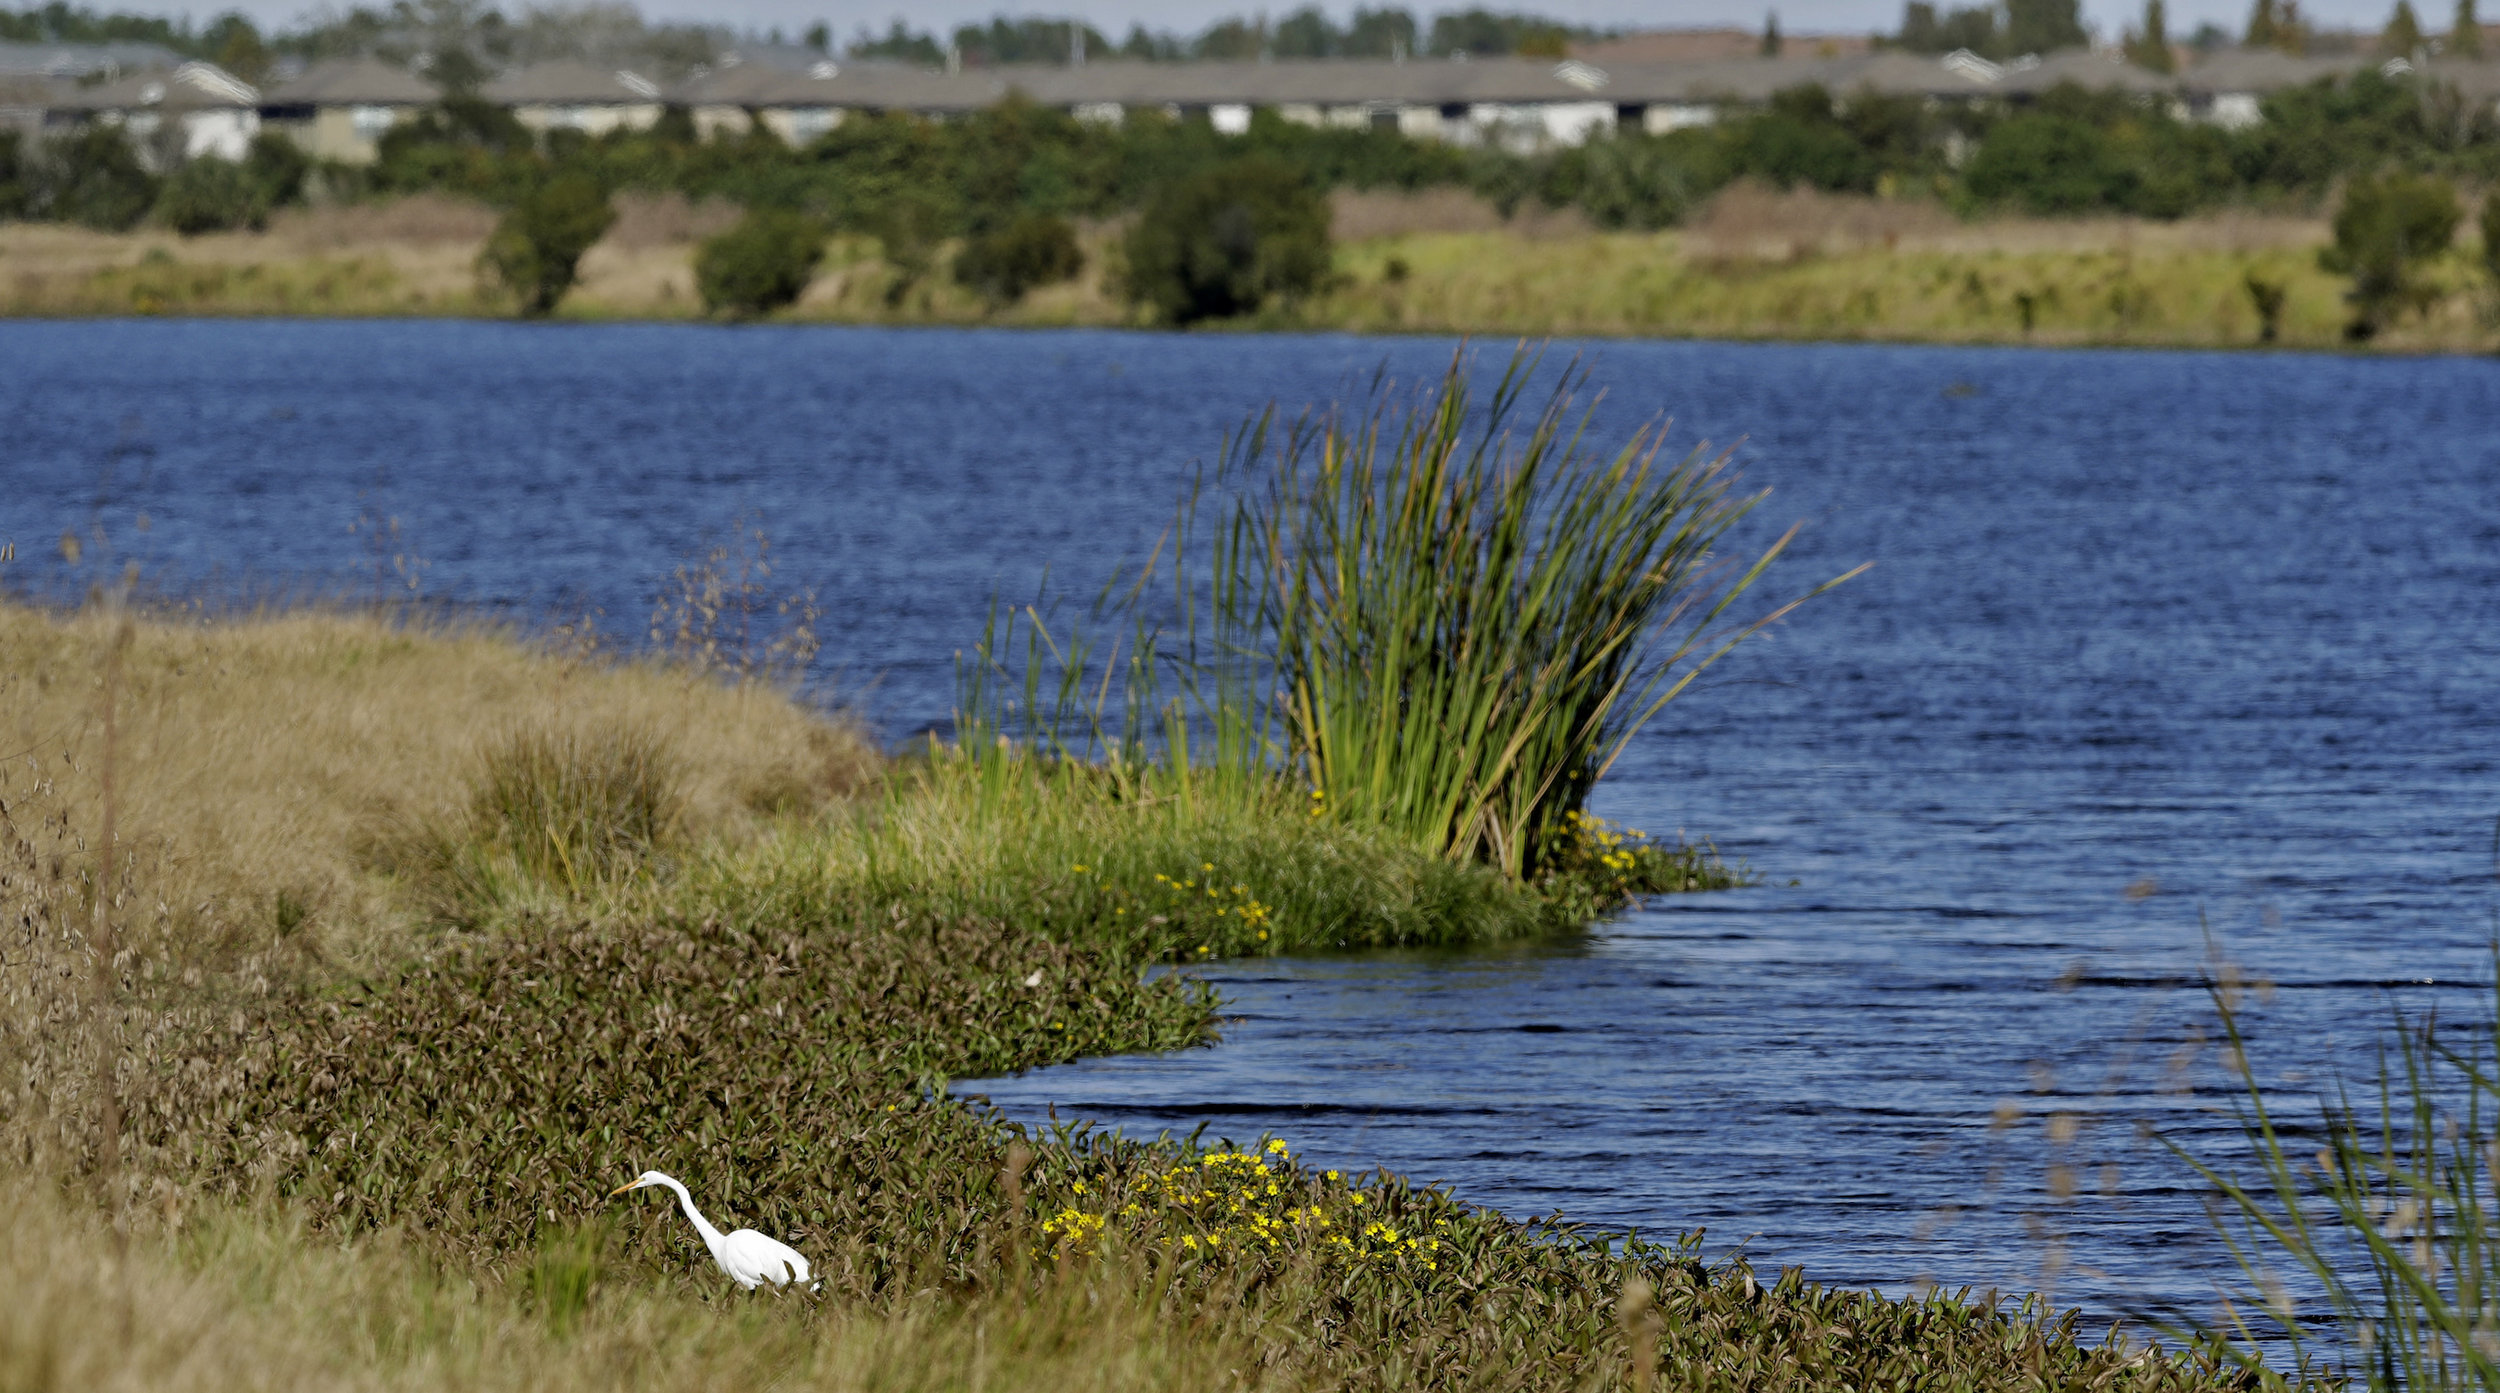 An Egret looks for food along Valhalla Pond Tuesday, Dec. 11, 2018, in Riverview, Fla. The Trump administration on Tuesday proposed withdrawing federal protections for countless waterways and wetlands across the country. (AP Photo/Chris O'Meara)